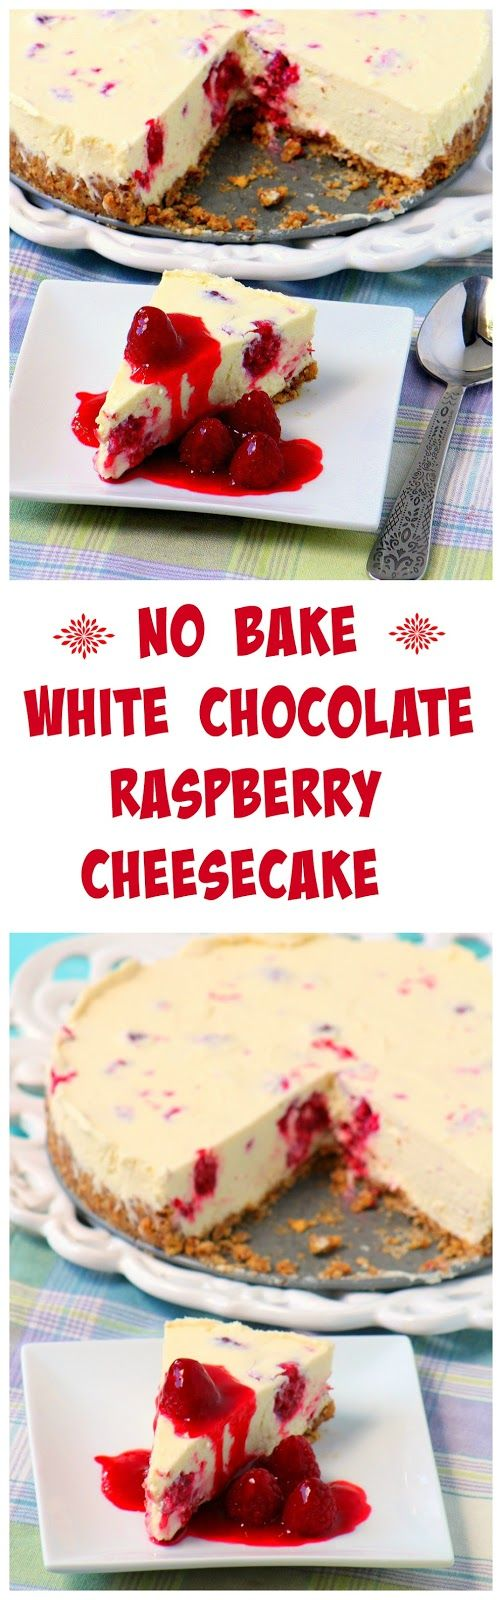 This luscious NO BAKE White Chocolate Raspberry Cheesecake is the ultimate summer dessert. Fresh and sweet-tangy raspberry coulis perfectly complements the rich and creamy cheesecake.Tried and tested, super easy recipe, too! #whitechocolateraspberrycheesecake